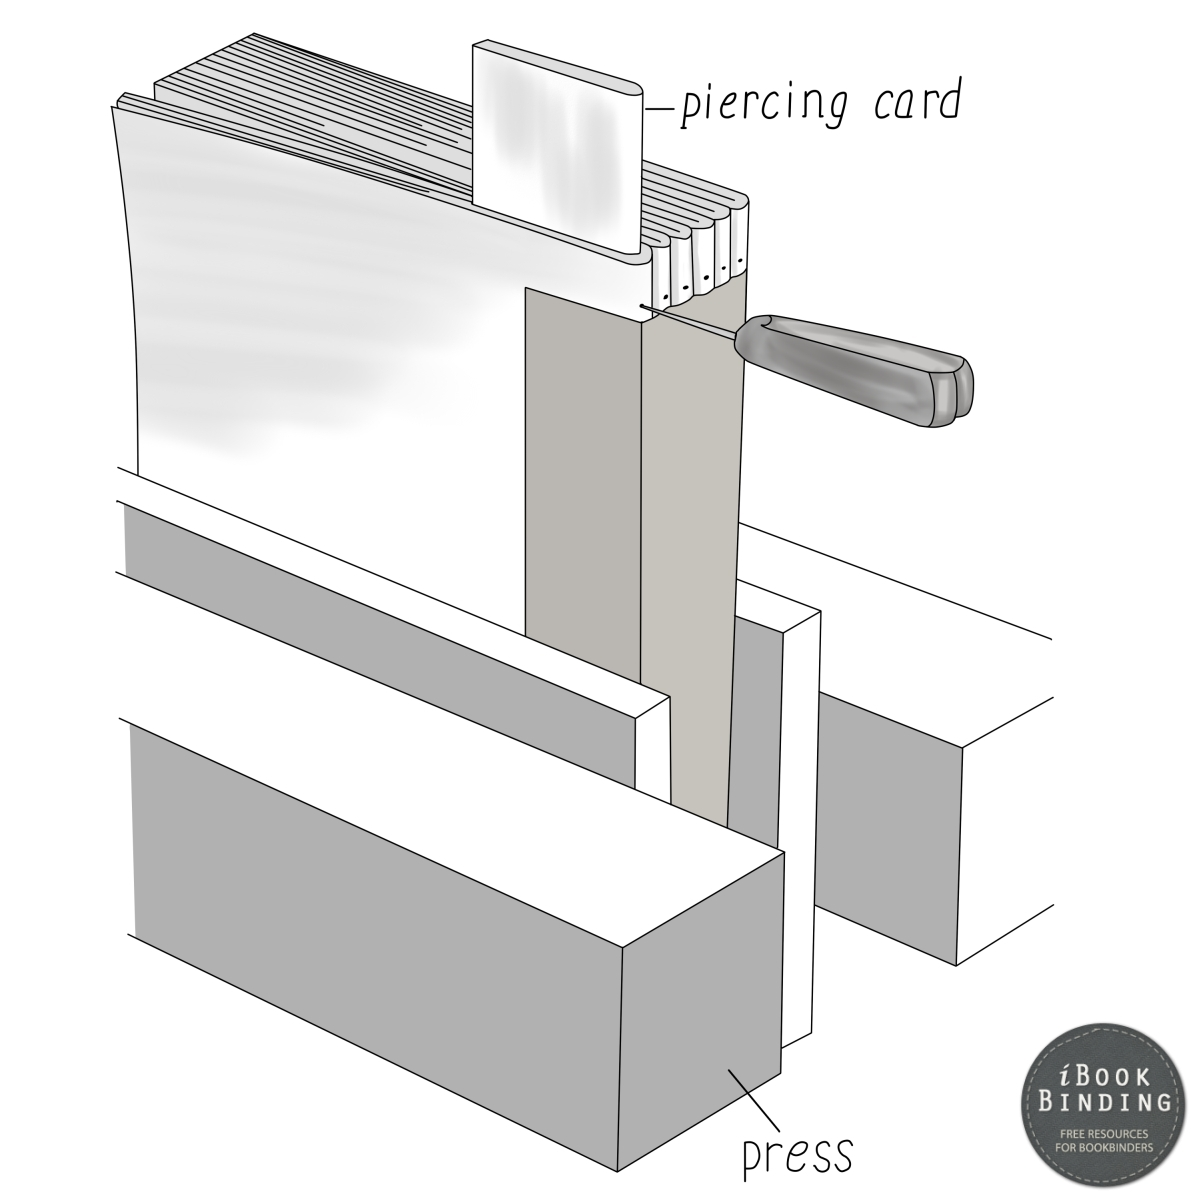 Figure 210 - Using a Piercing Awl to Pierce through Book Signatures into Piercing Card